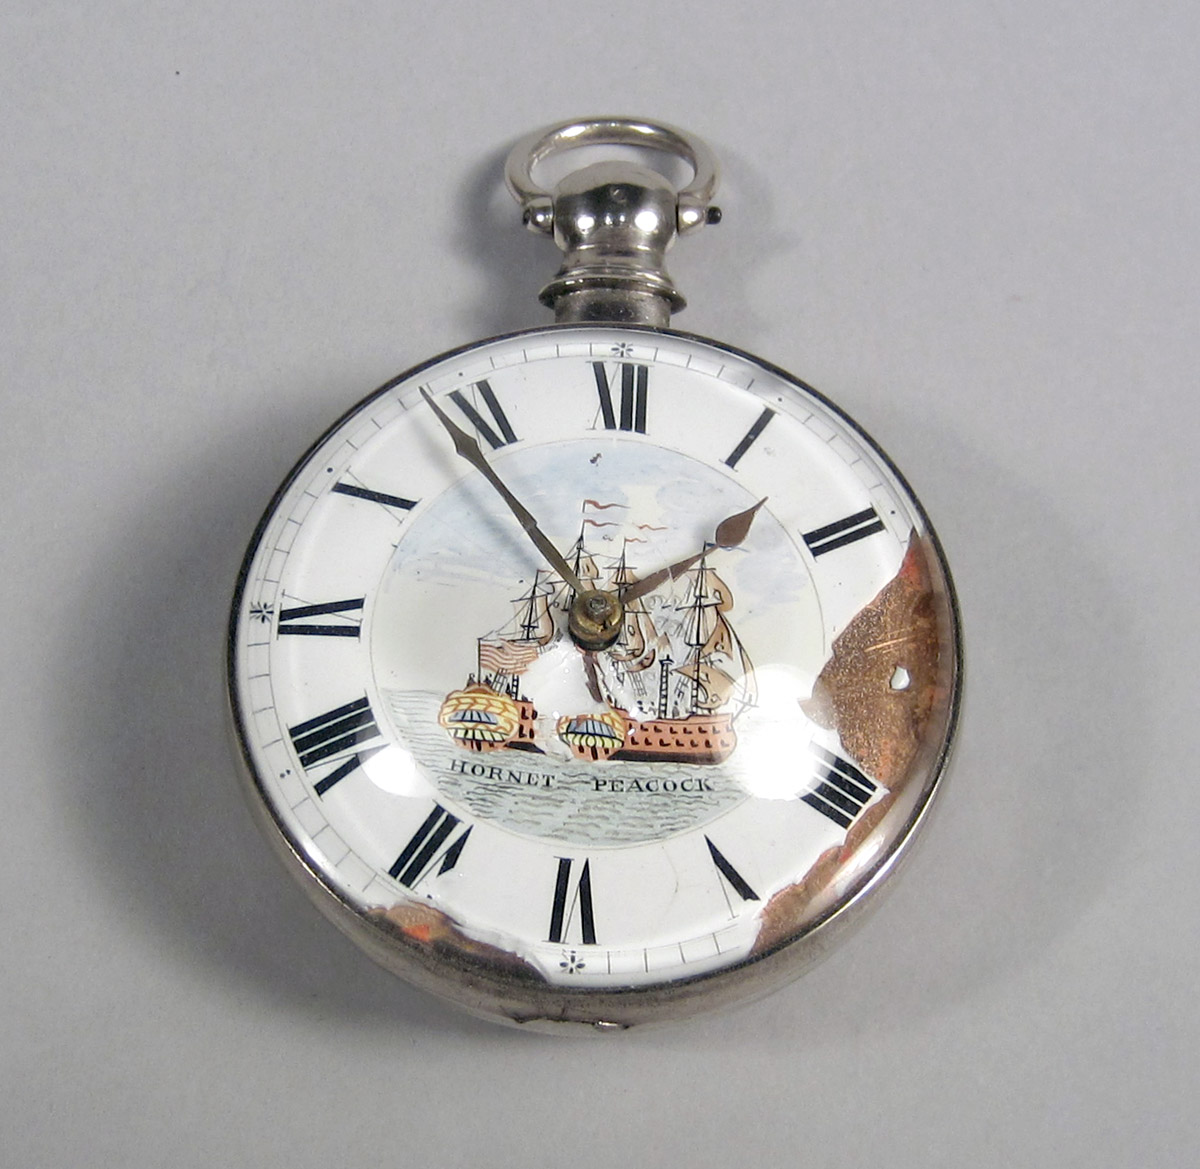 1957.0041.002 A, C & D Silver Pocket watch